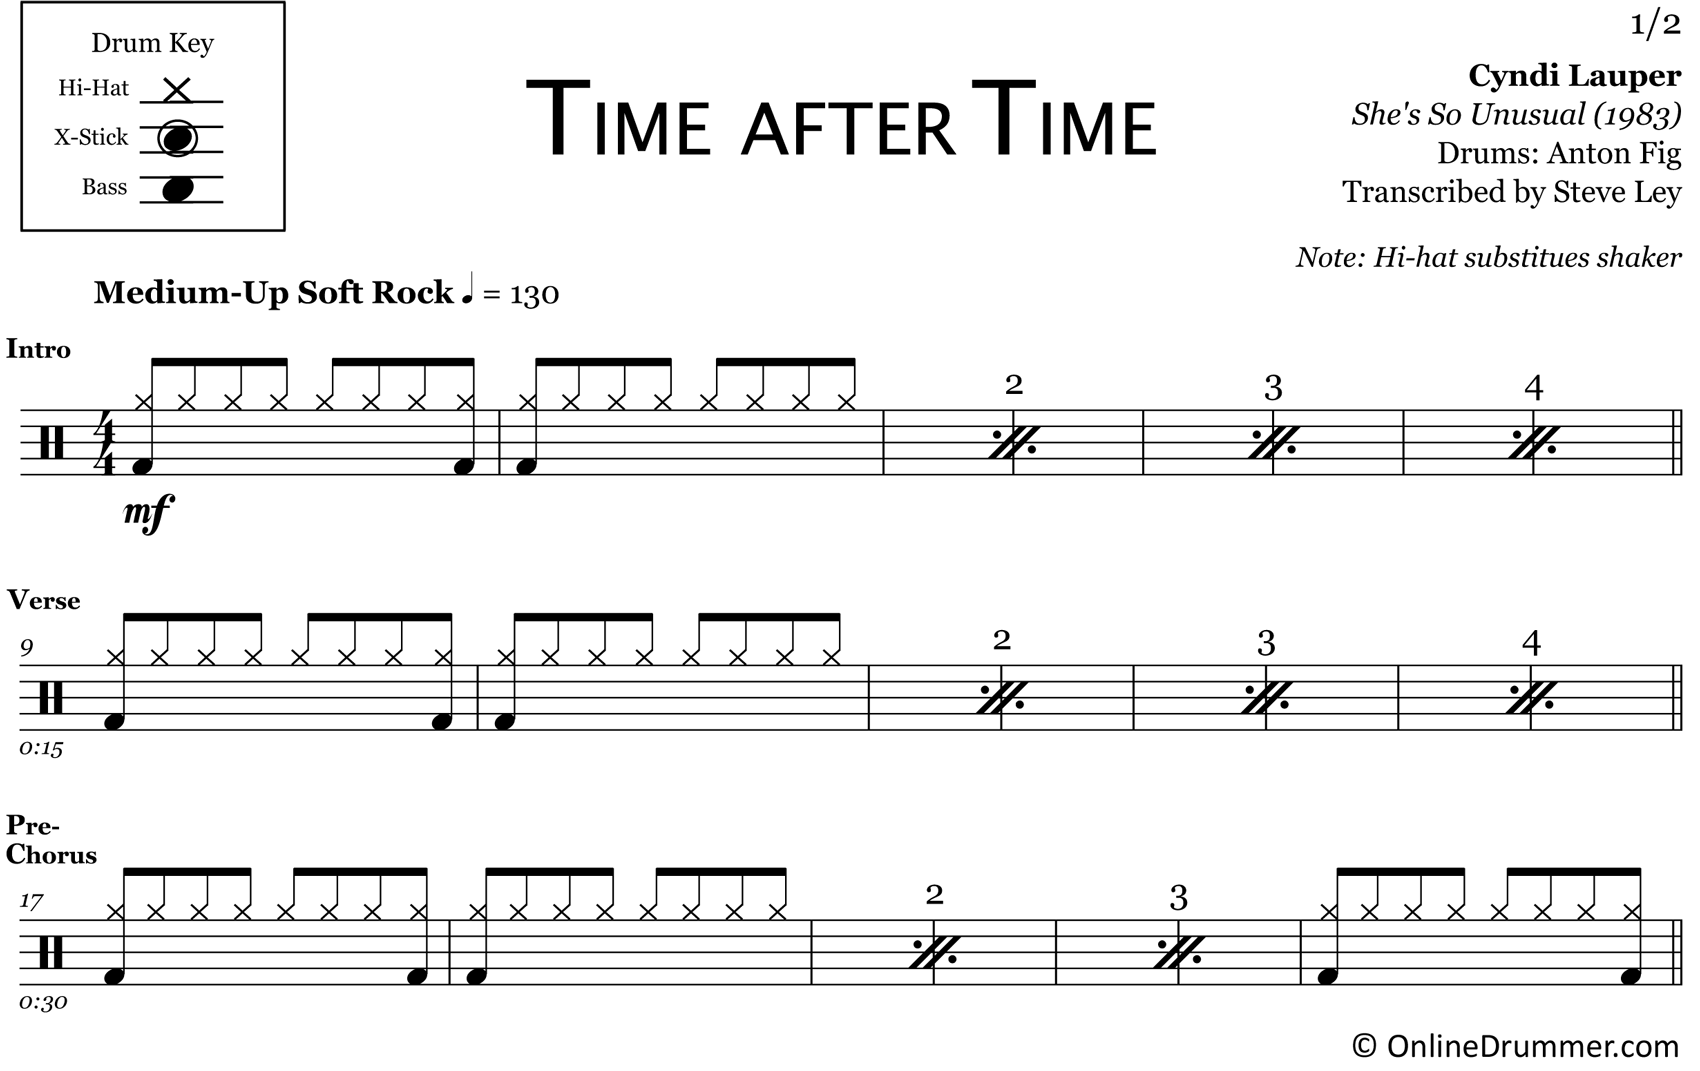 Time After Time - Cyndi Lauper - Drum Sheet Music